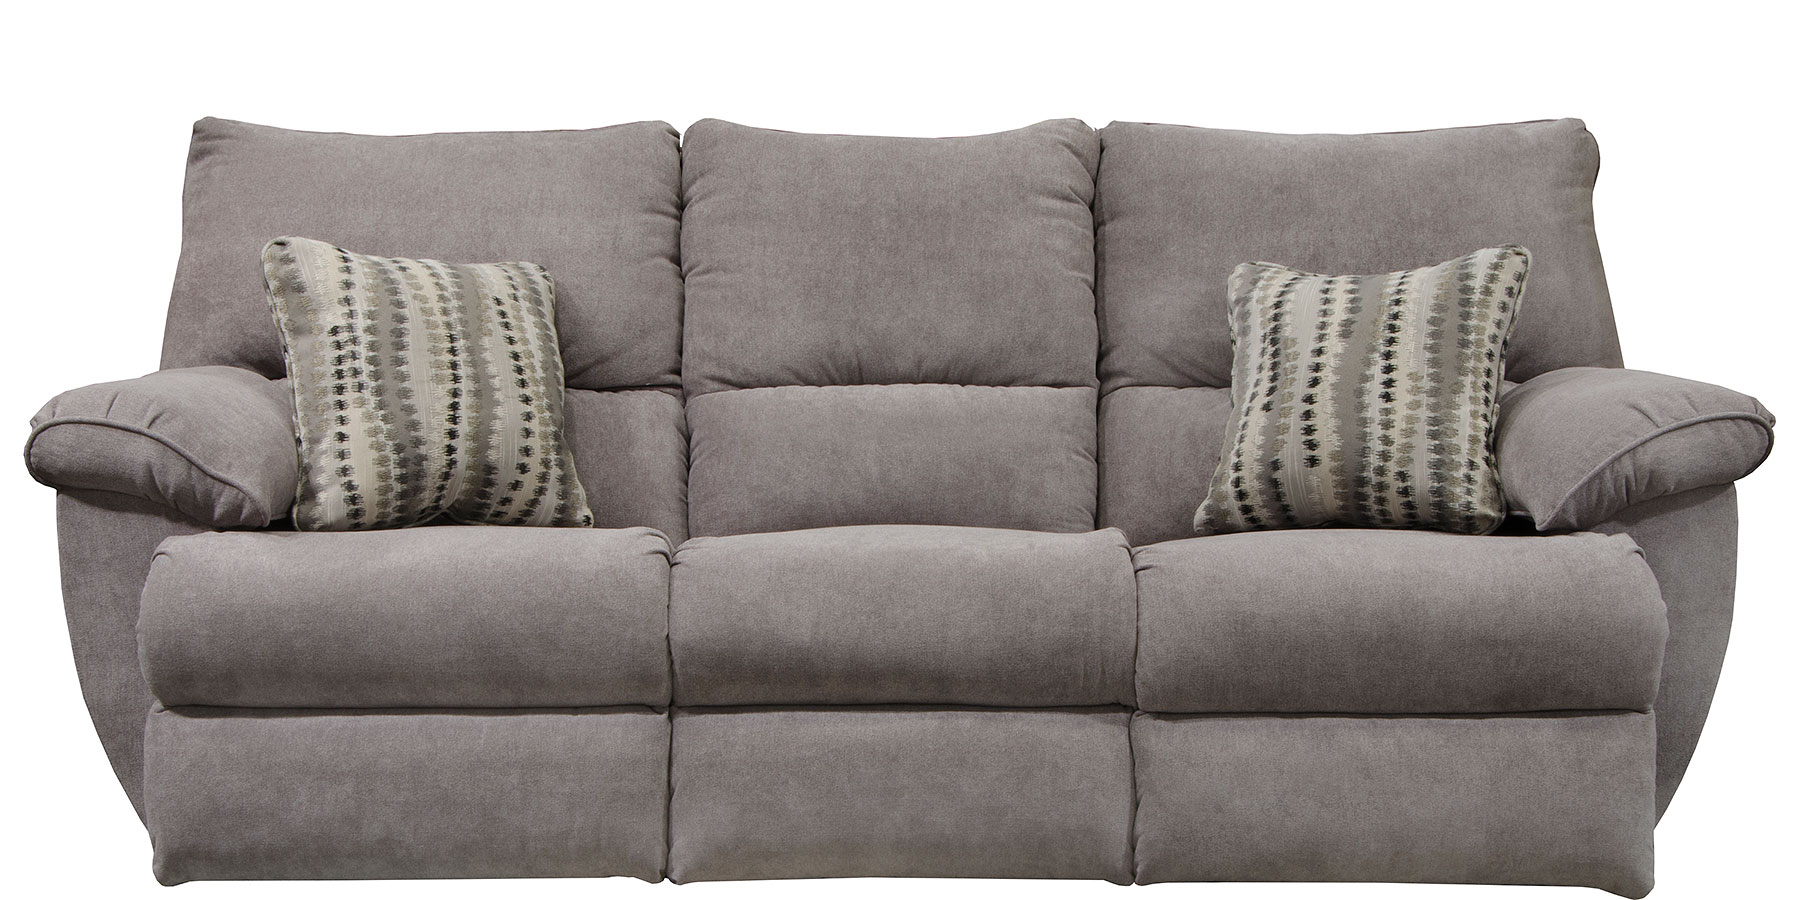 Sadler Lay Flat Reclining Sofa W Drop Down Table Mica